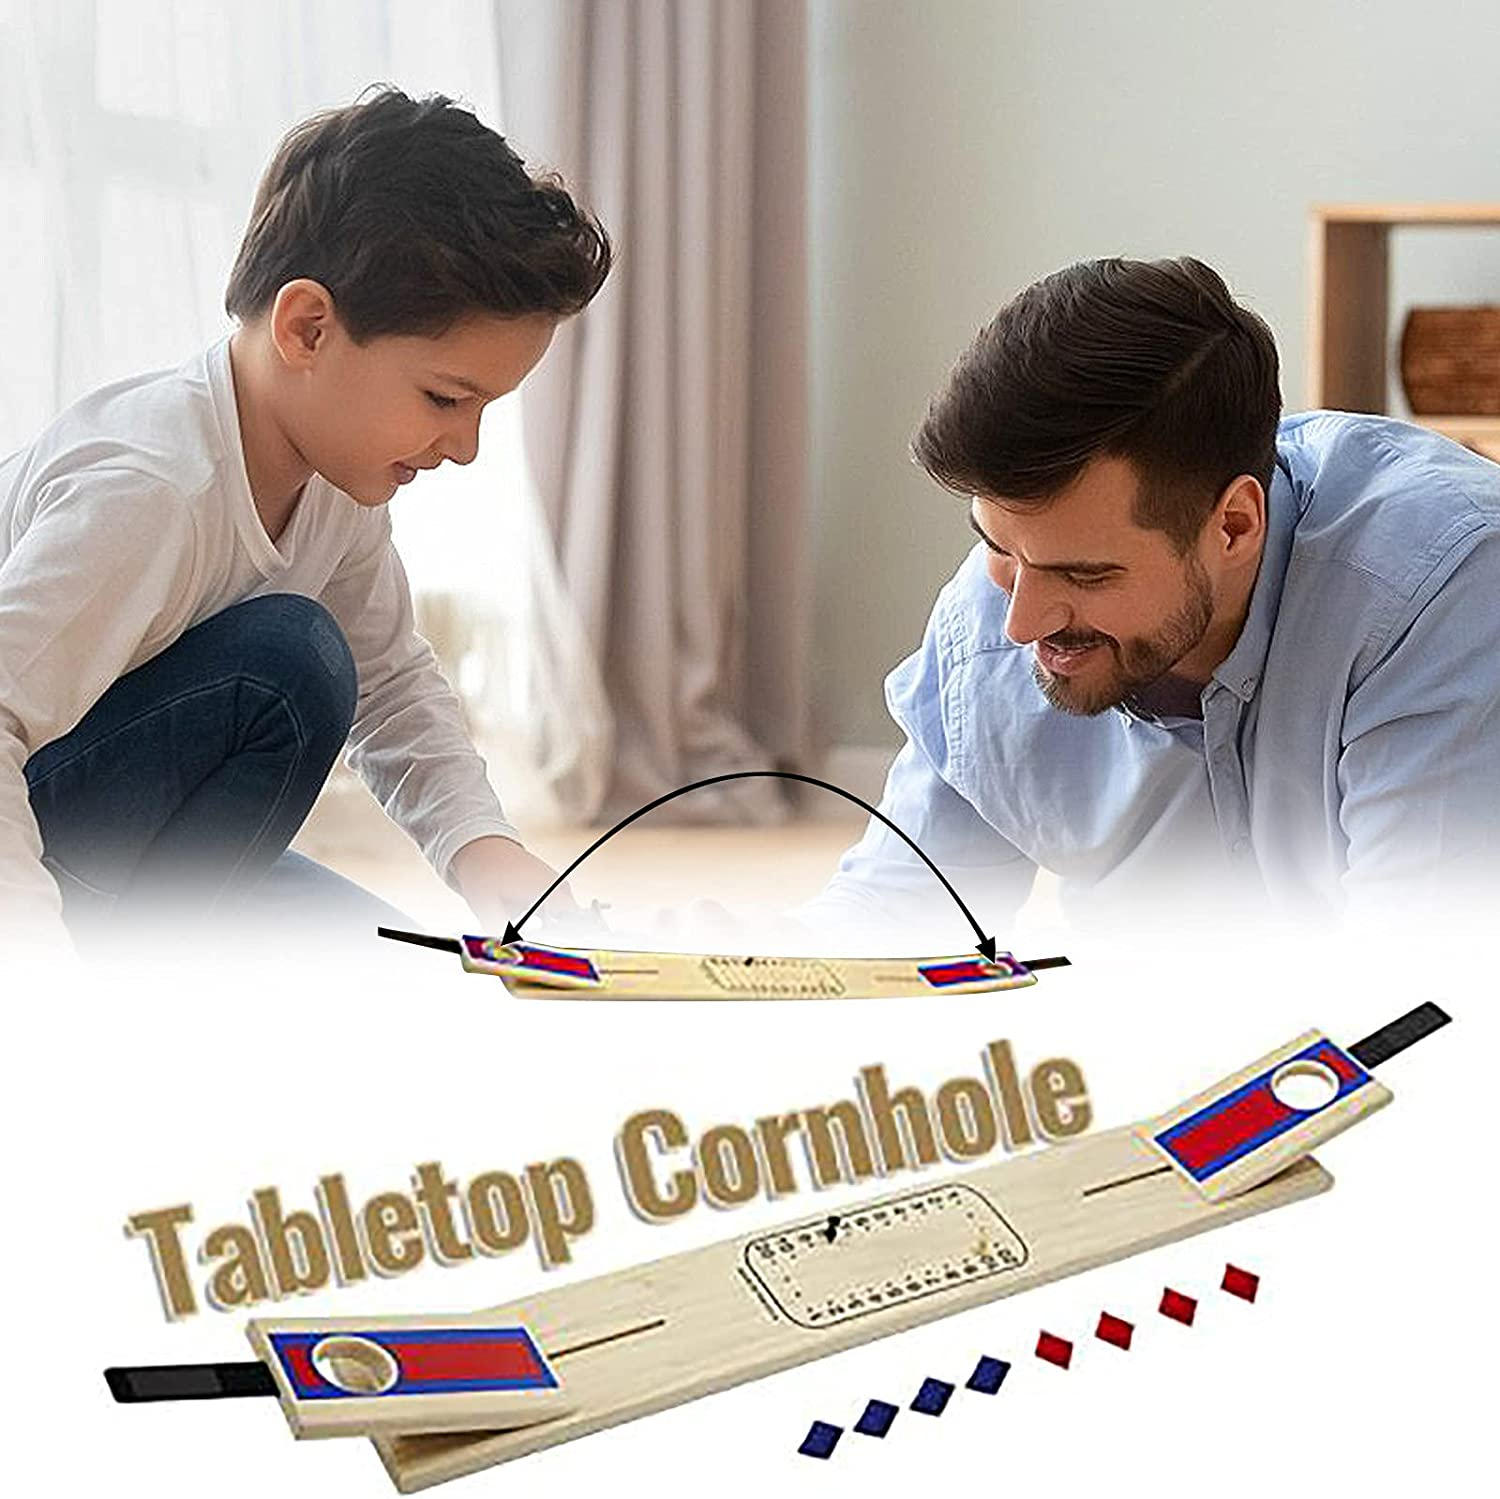 Tabletop Classic Cornhole Complete Free Shipping Set with Scorer 8 Bean Import - Bags Includes